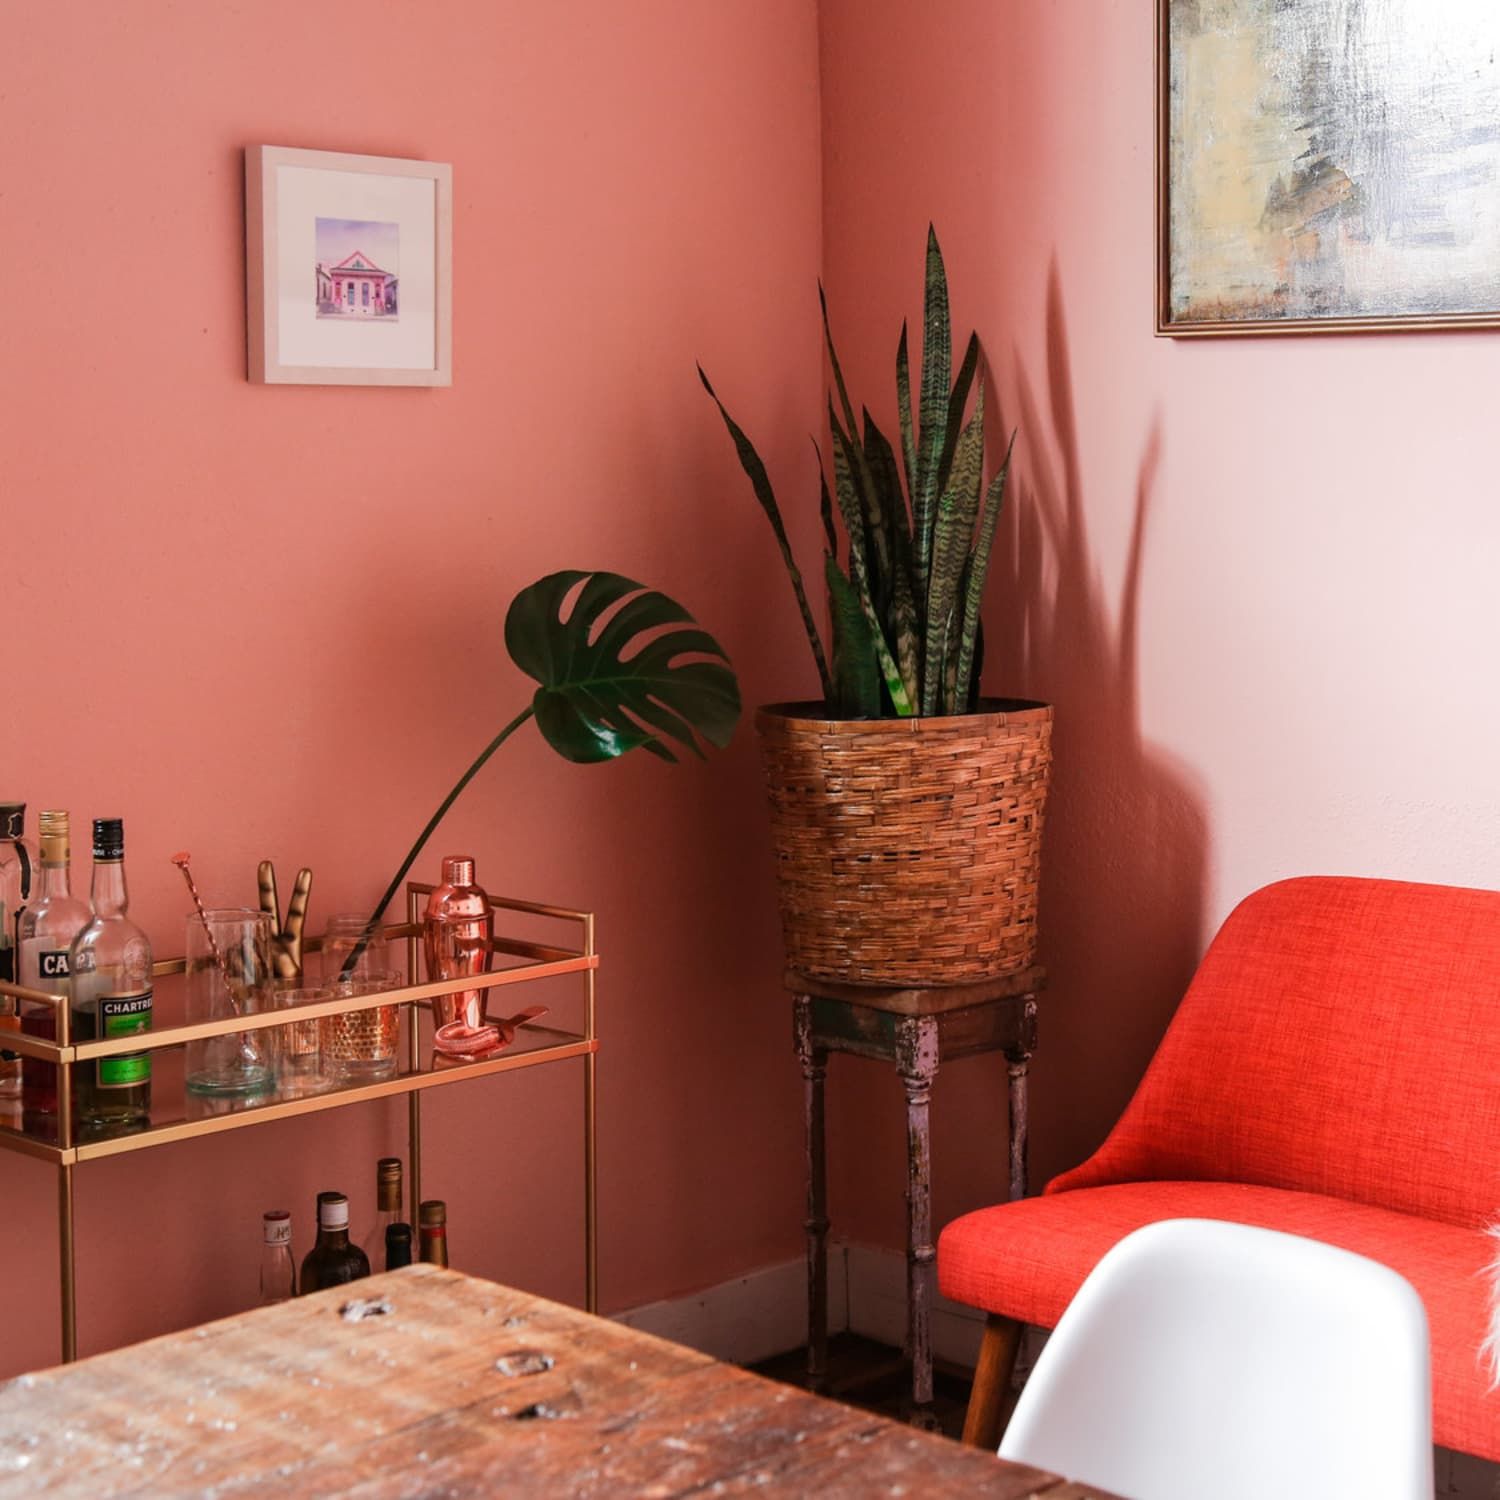 Millennial Pink and Red is the Latest Color Trend ...